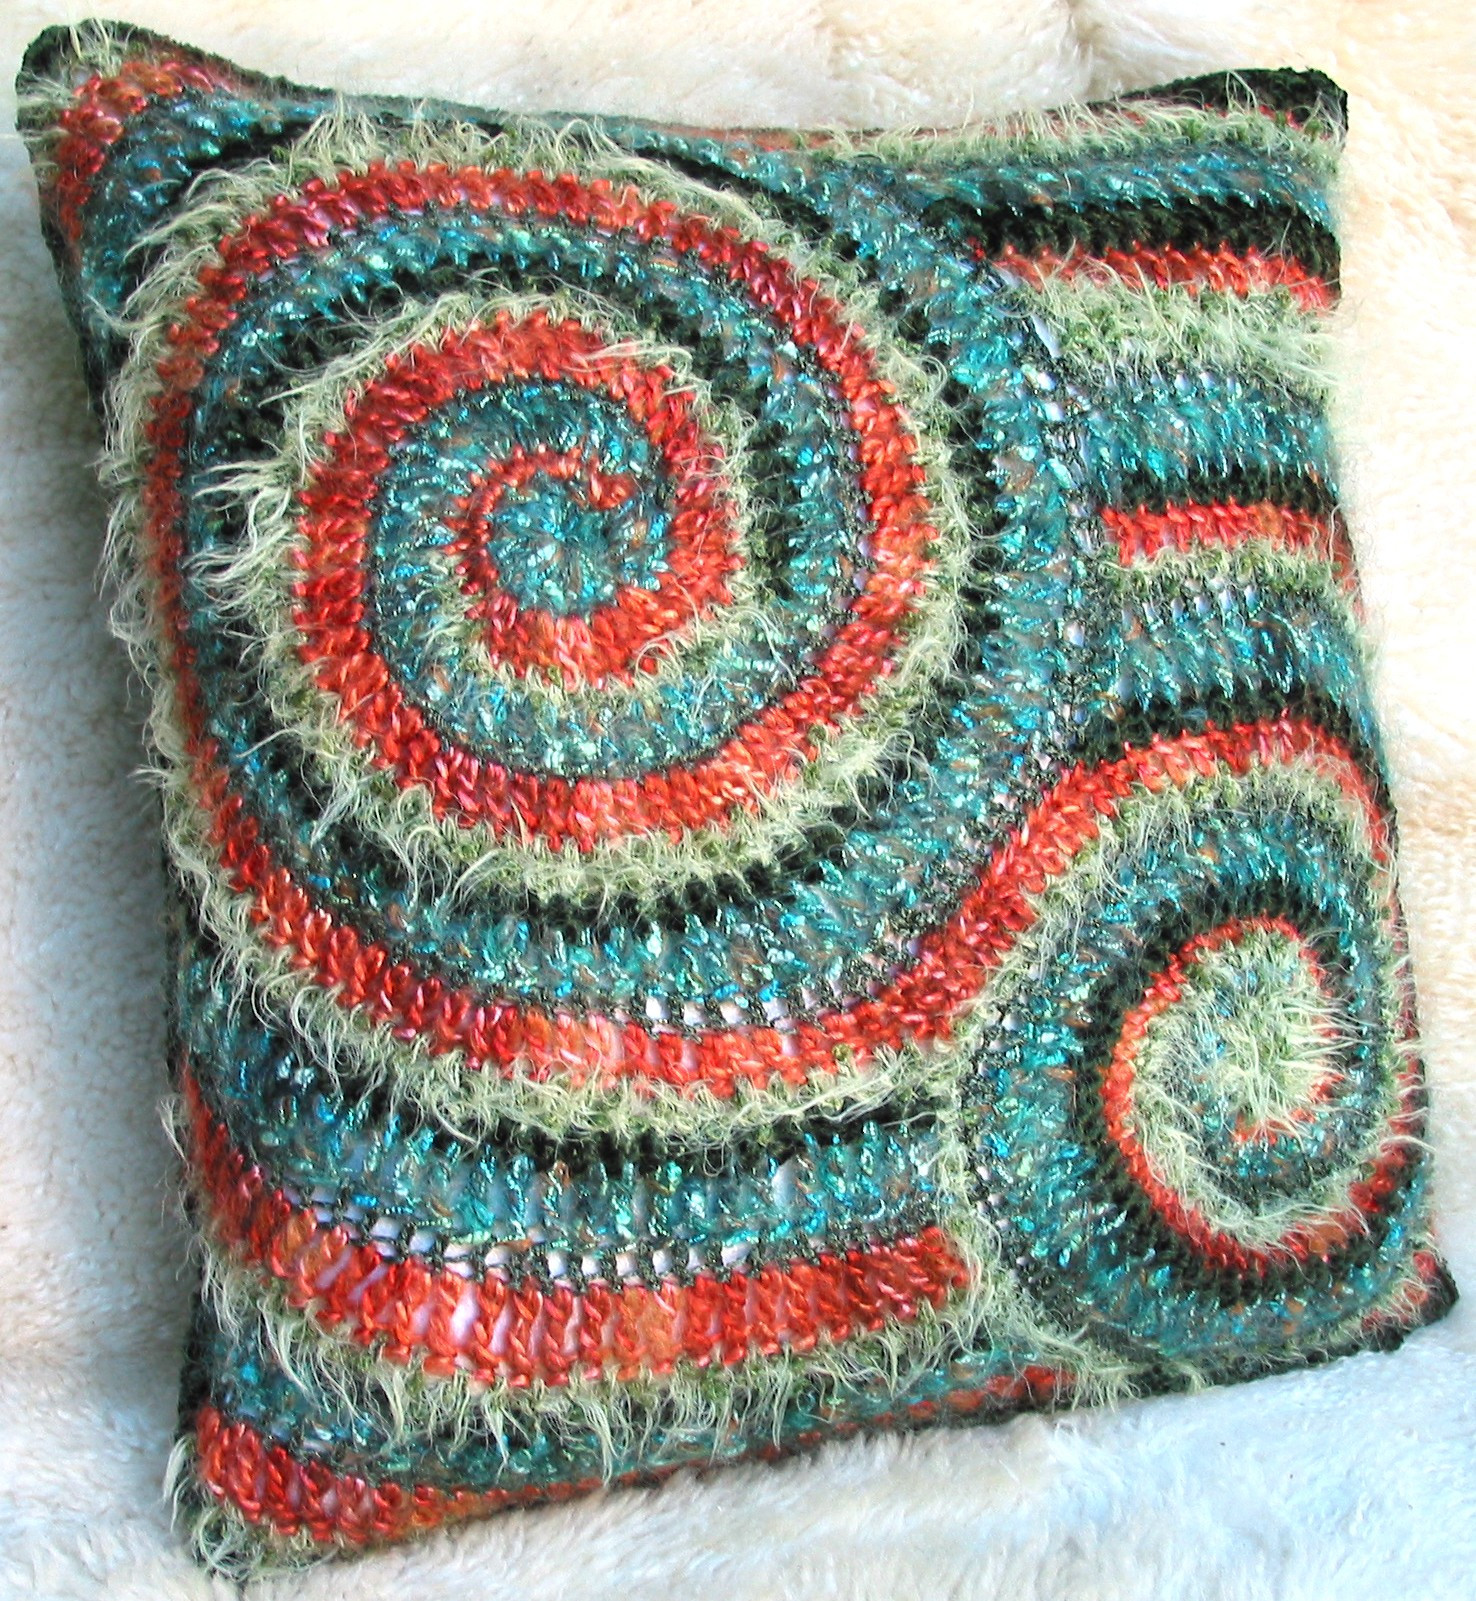 Crochet Pillow Unique Ngv • Inspiration On Pinterest Of Superb 50 Images Crochet Pillow